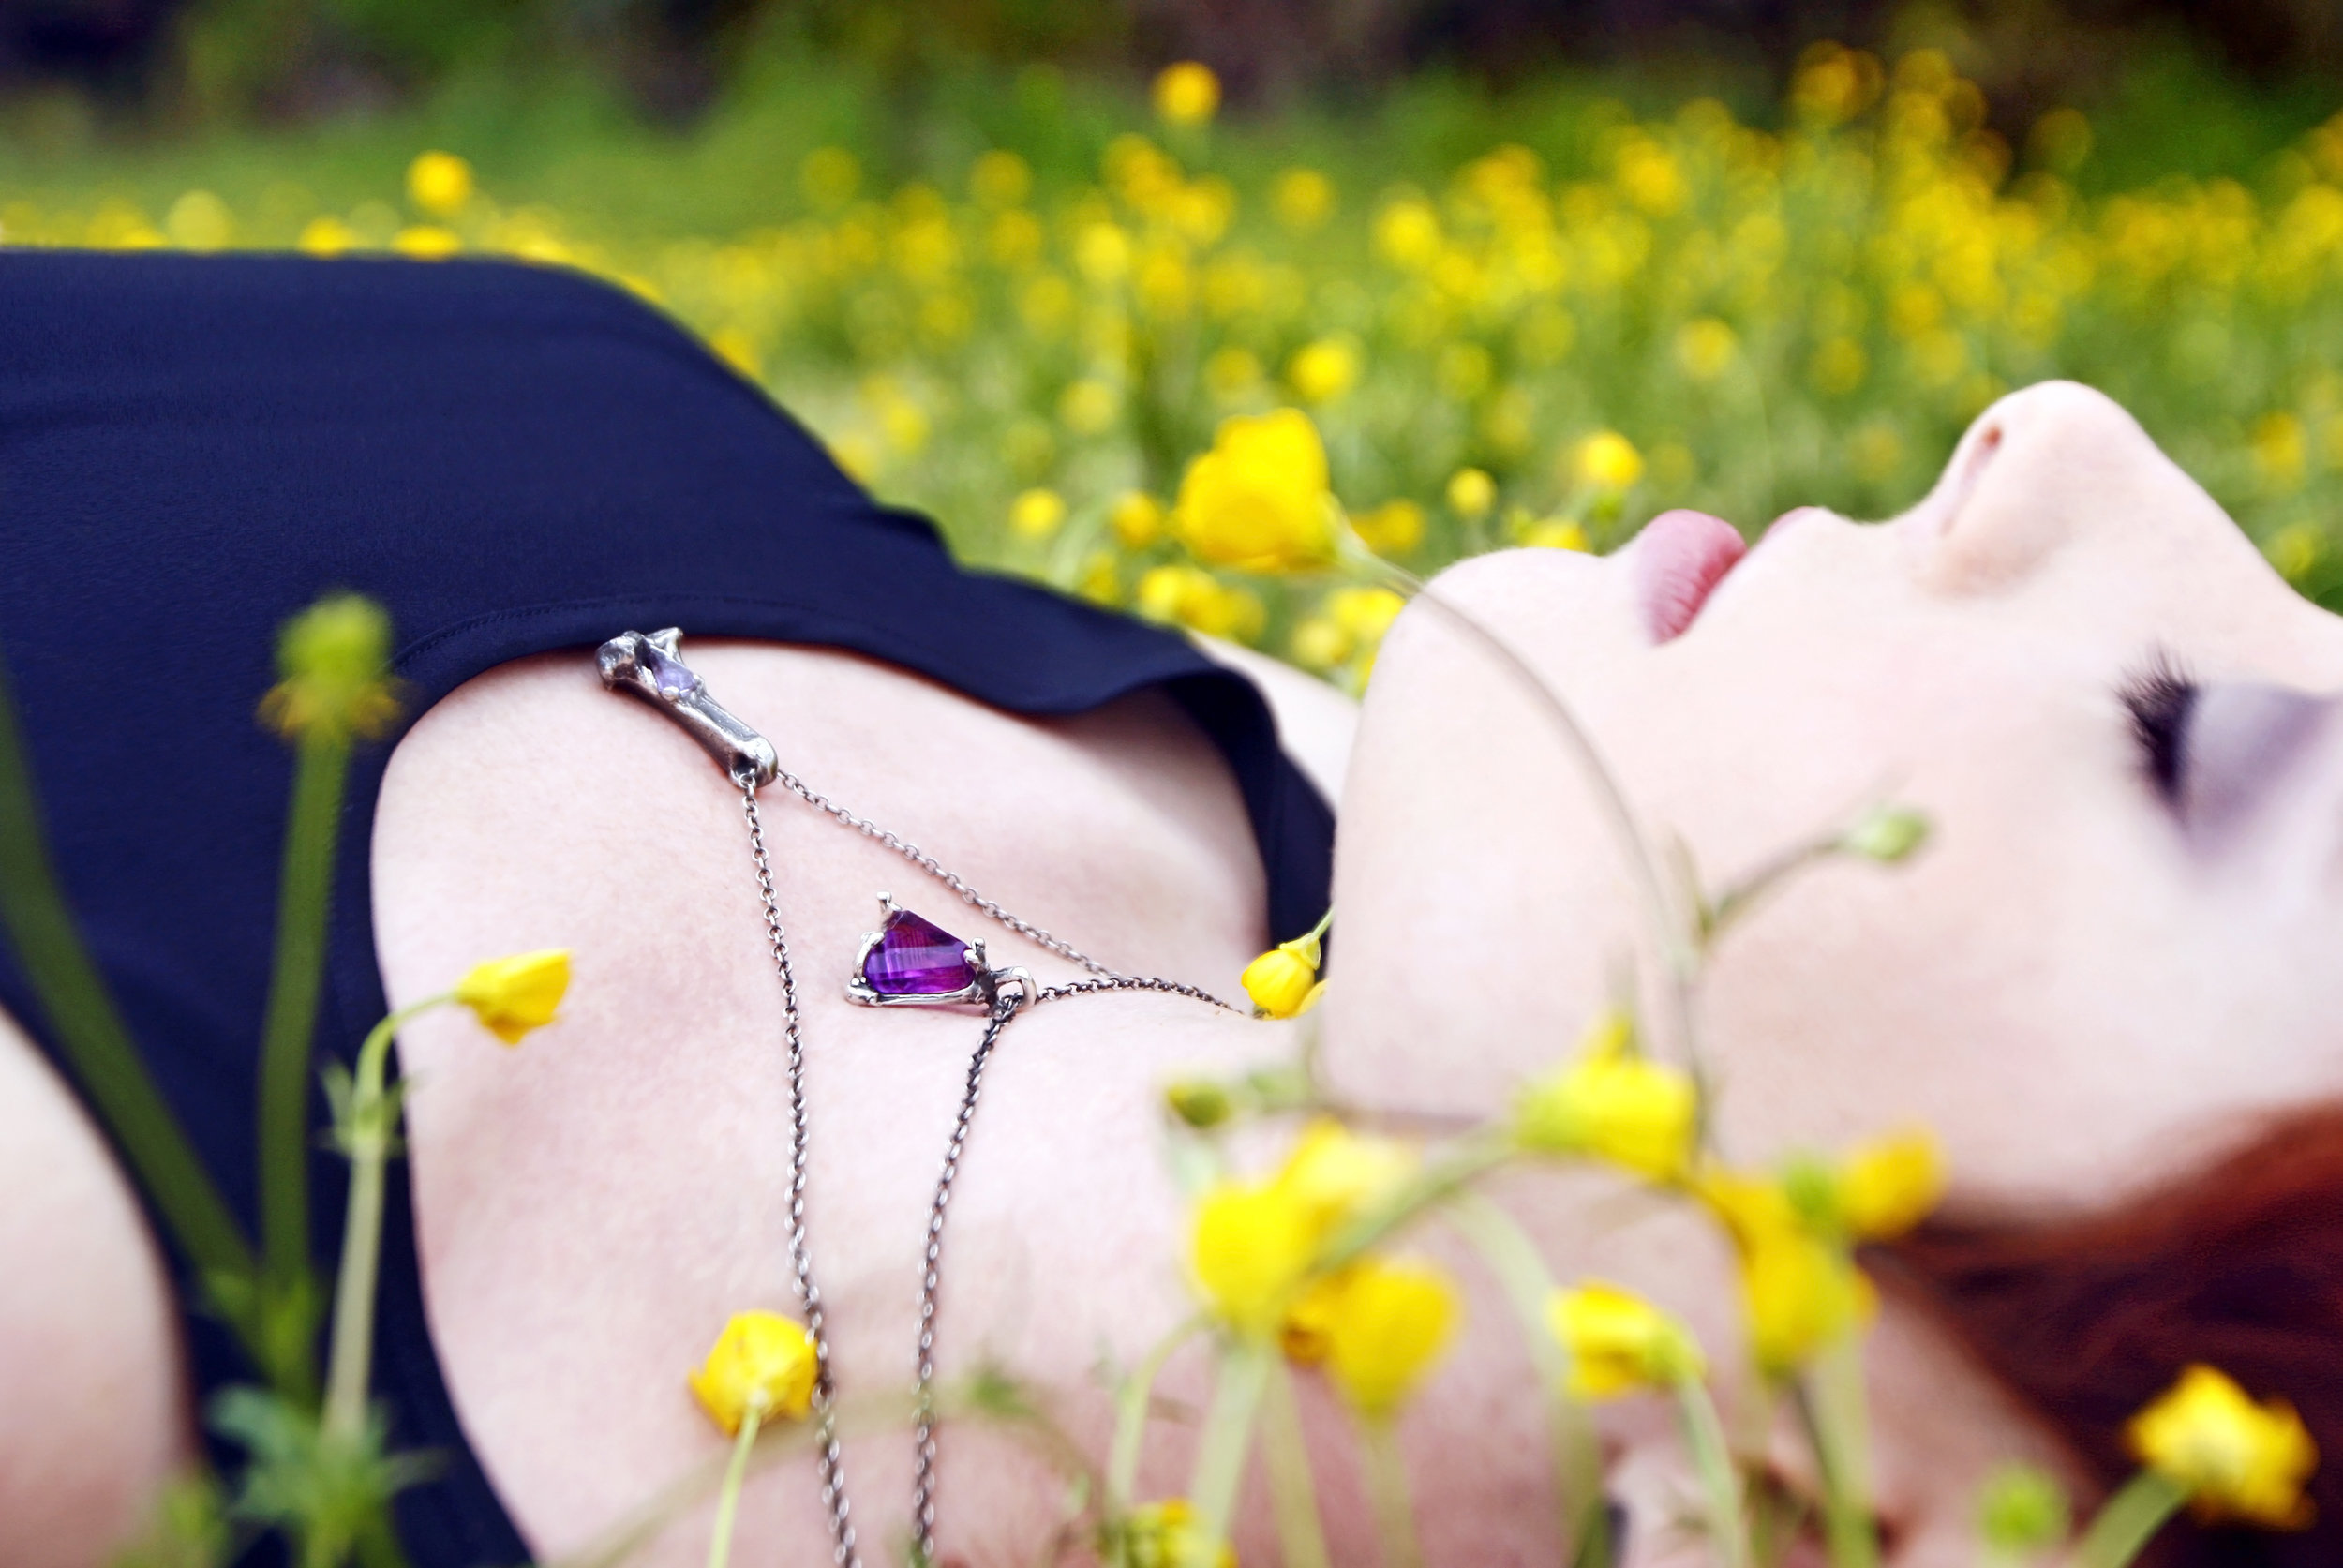 Laying in a field of flowers - ultimate white noise location.